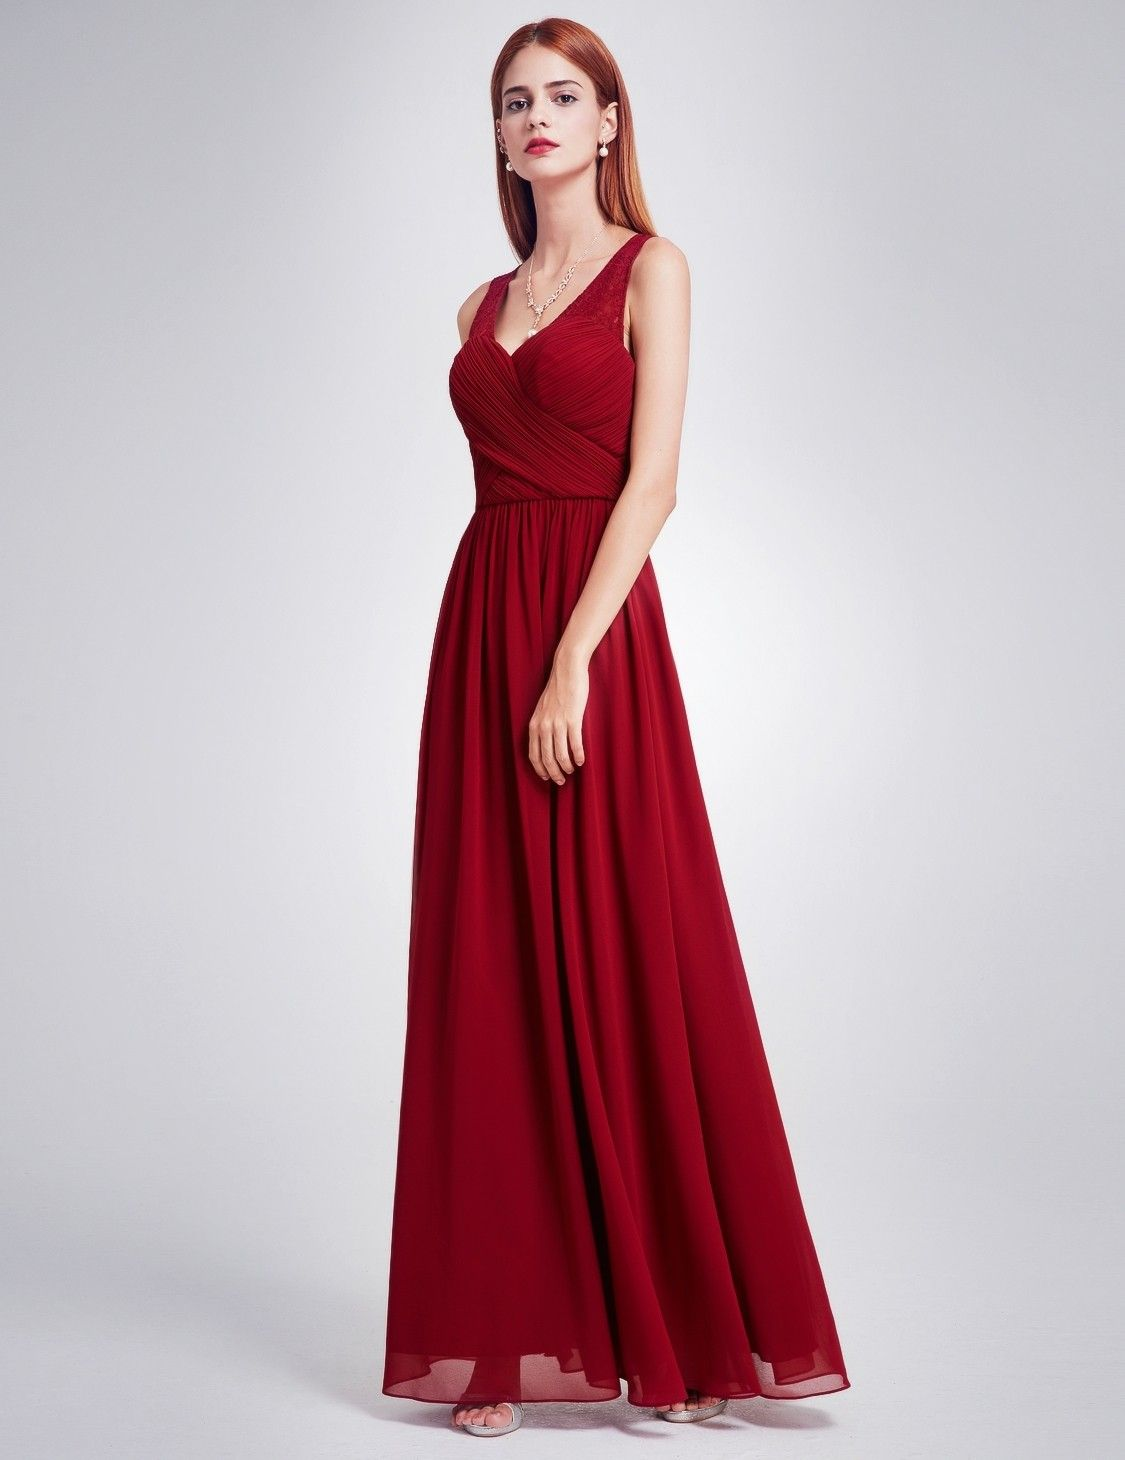 ca735d7d81c64 Sleeveless Ruched Bust Long Evening Dress with Corset Back | Ever-Pretty  #longdress #EverPretty #eveningdress #rucheddress #Occasiondress